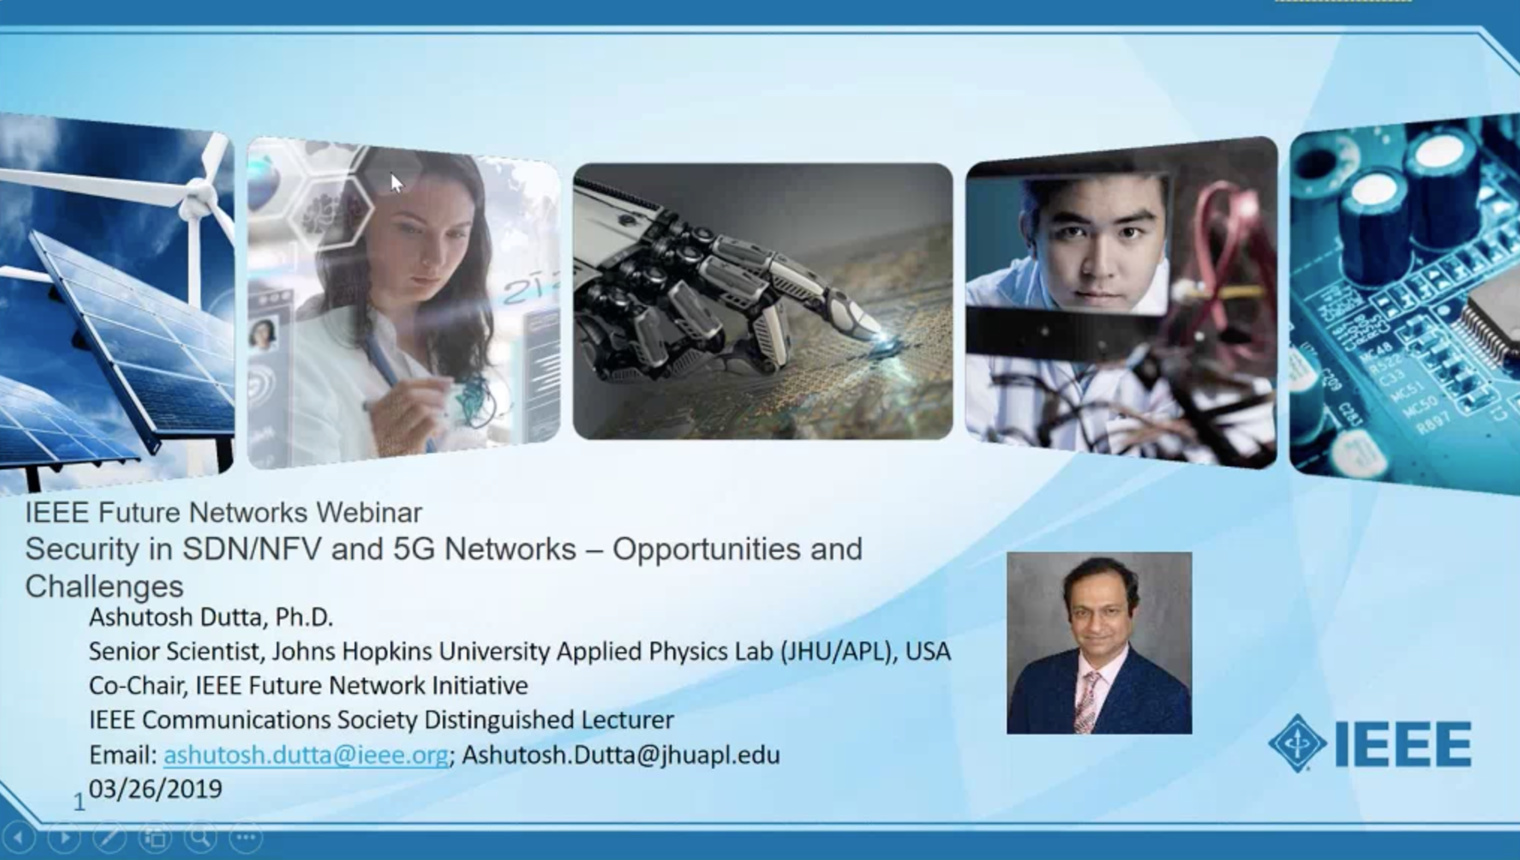 Security in SDN/NFV and 5G Network: Opportunities and Challenges - IEEE Future Networks Initiative